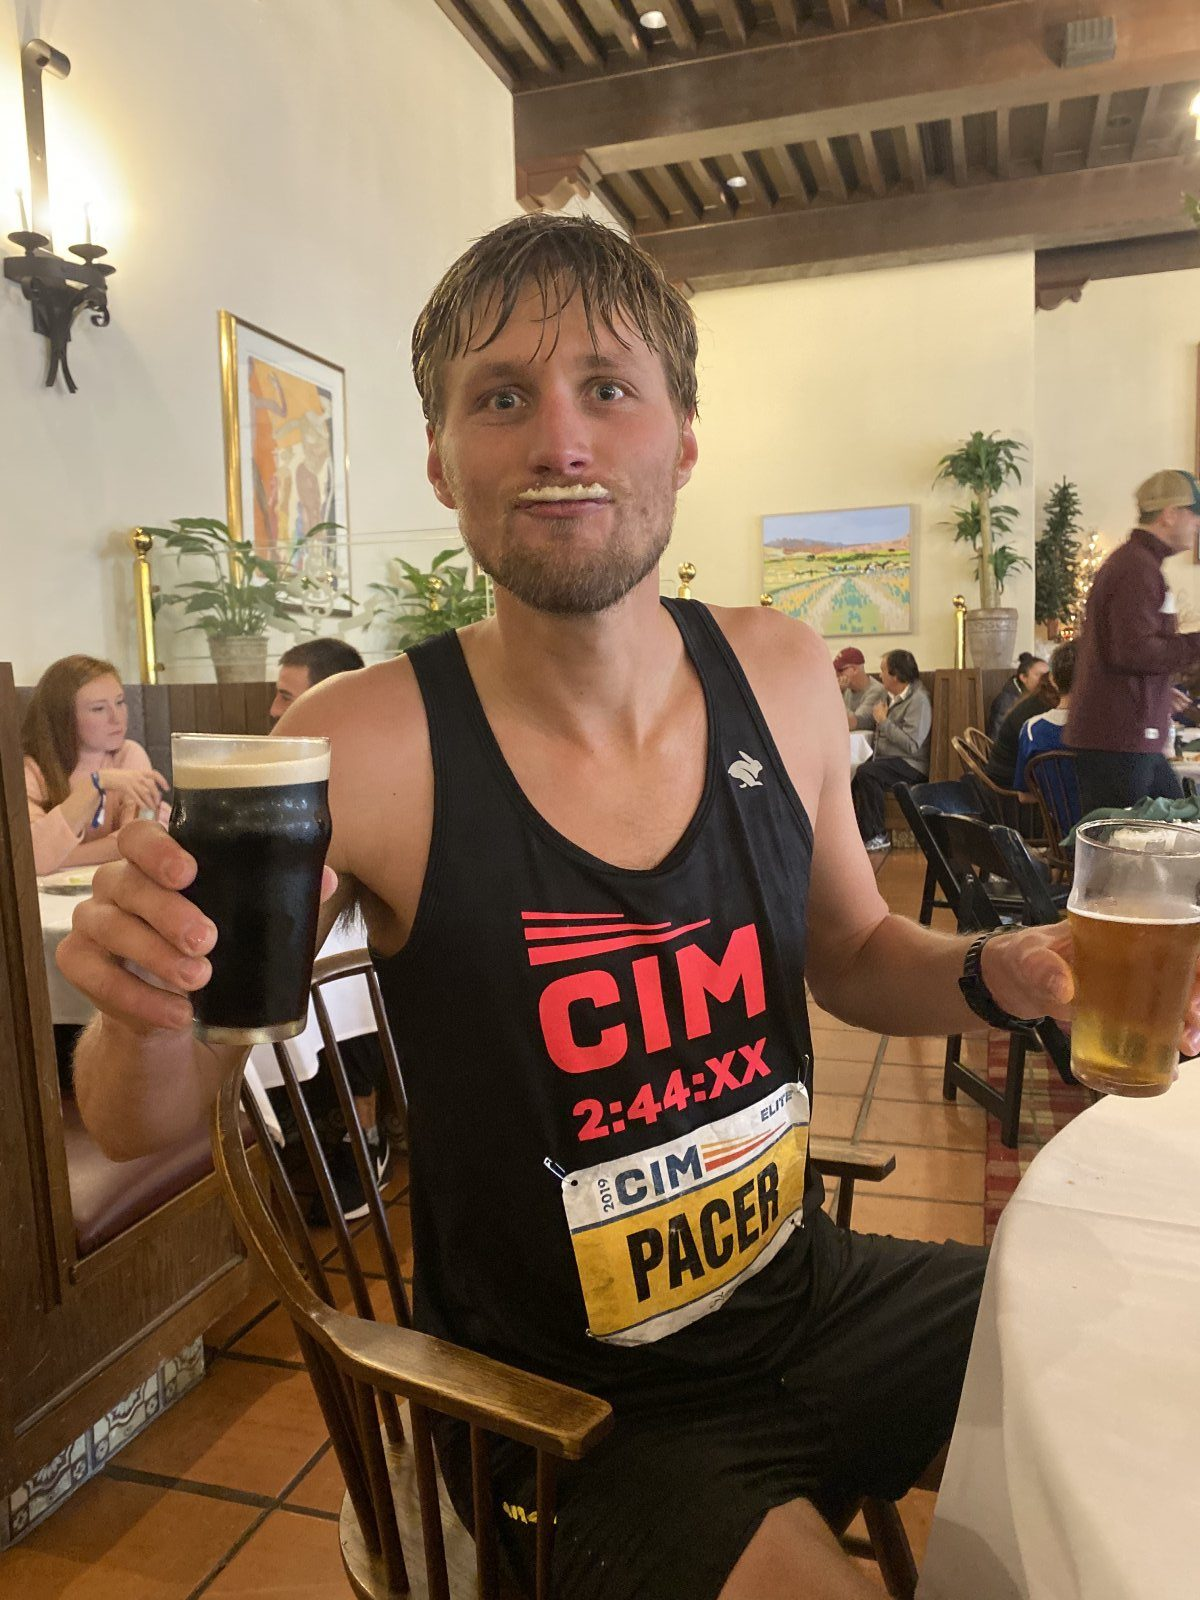 CIM pacer enjoying two beers with foam on his lip